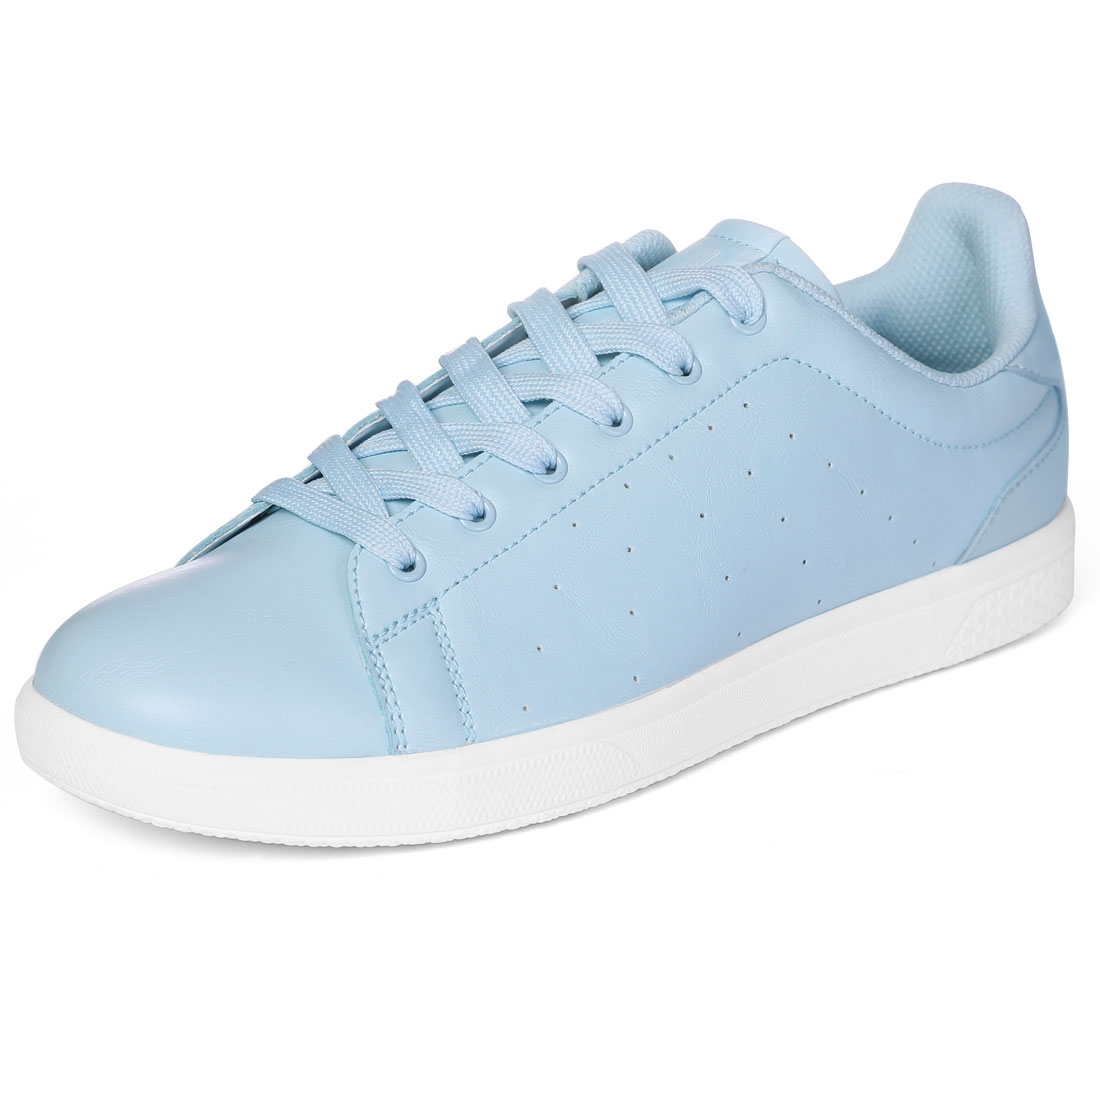 PYPE Women Round Toe Low Top Lace Up Sneakers Blue US 7